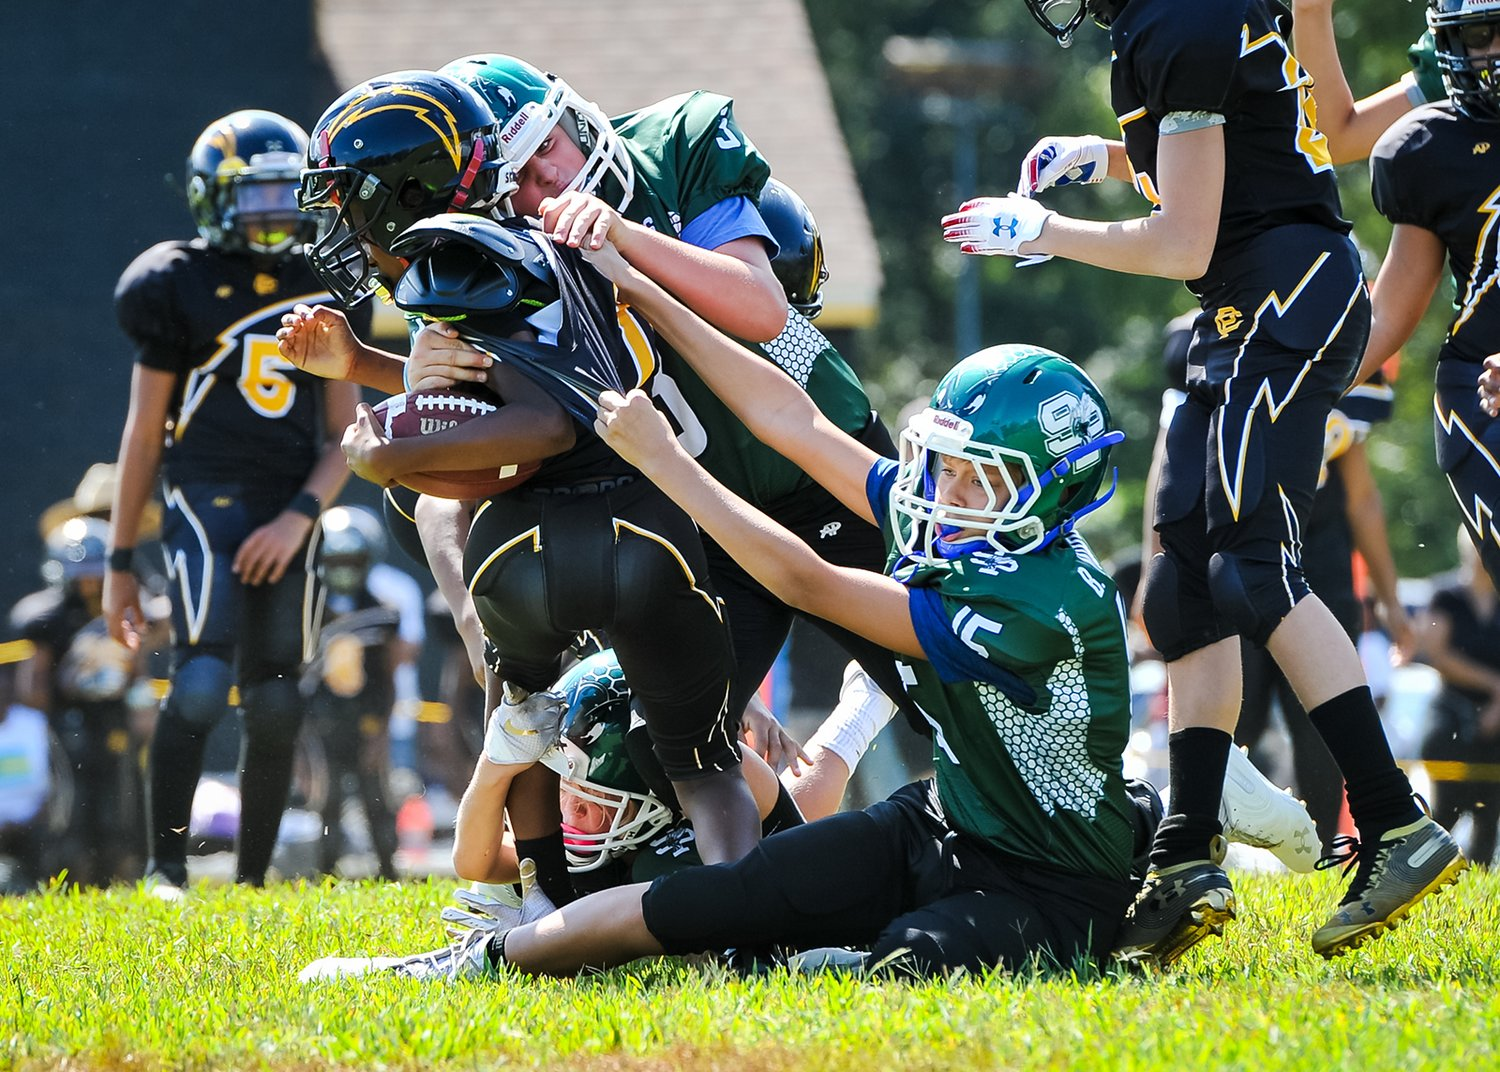 Youth tackle football is now allowed this year following an initial decision to limit the sport to flag football only.